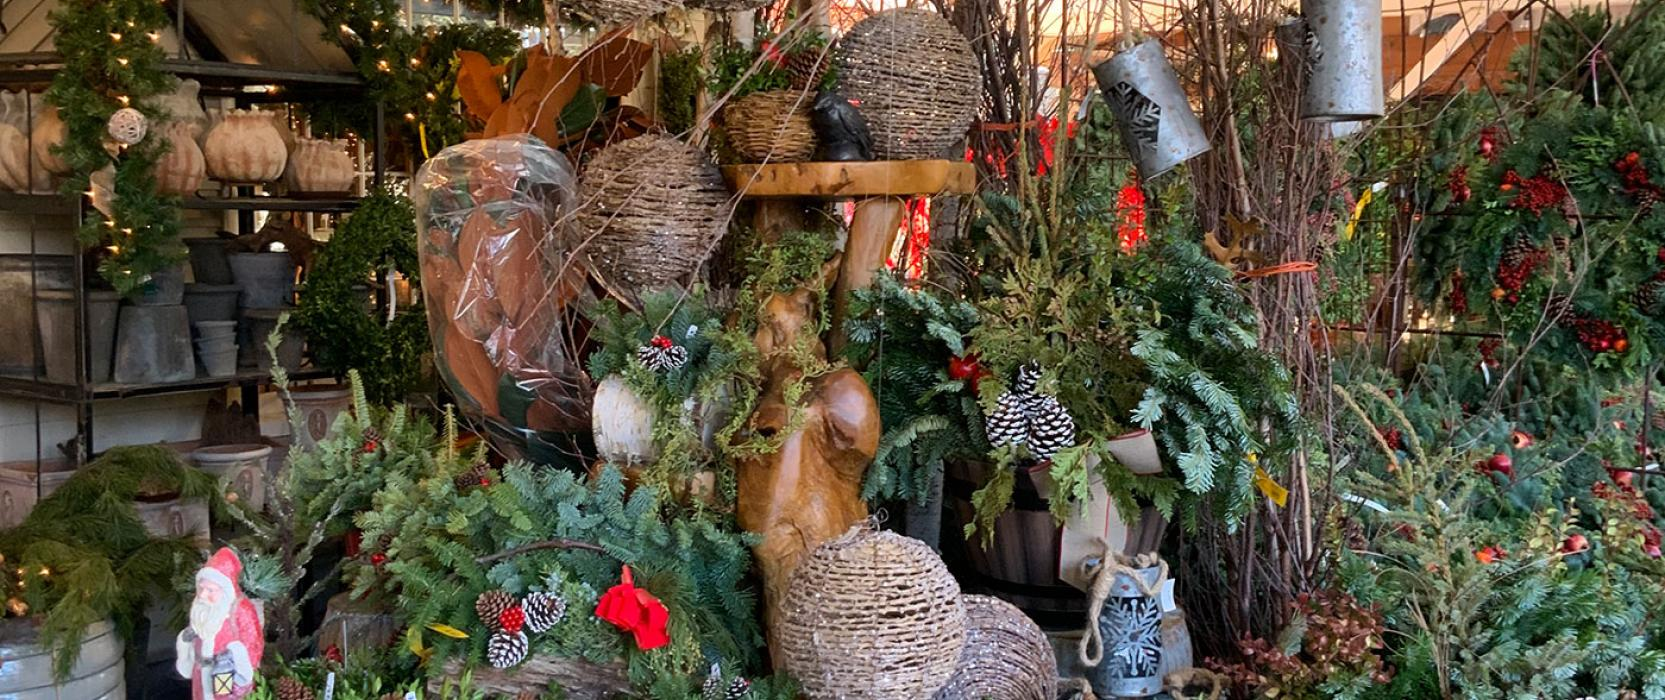 Festive holiday decorations at Stonegate Gardens in Lincoln, MA